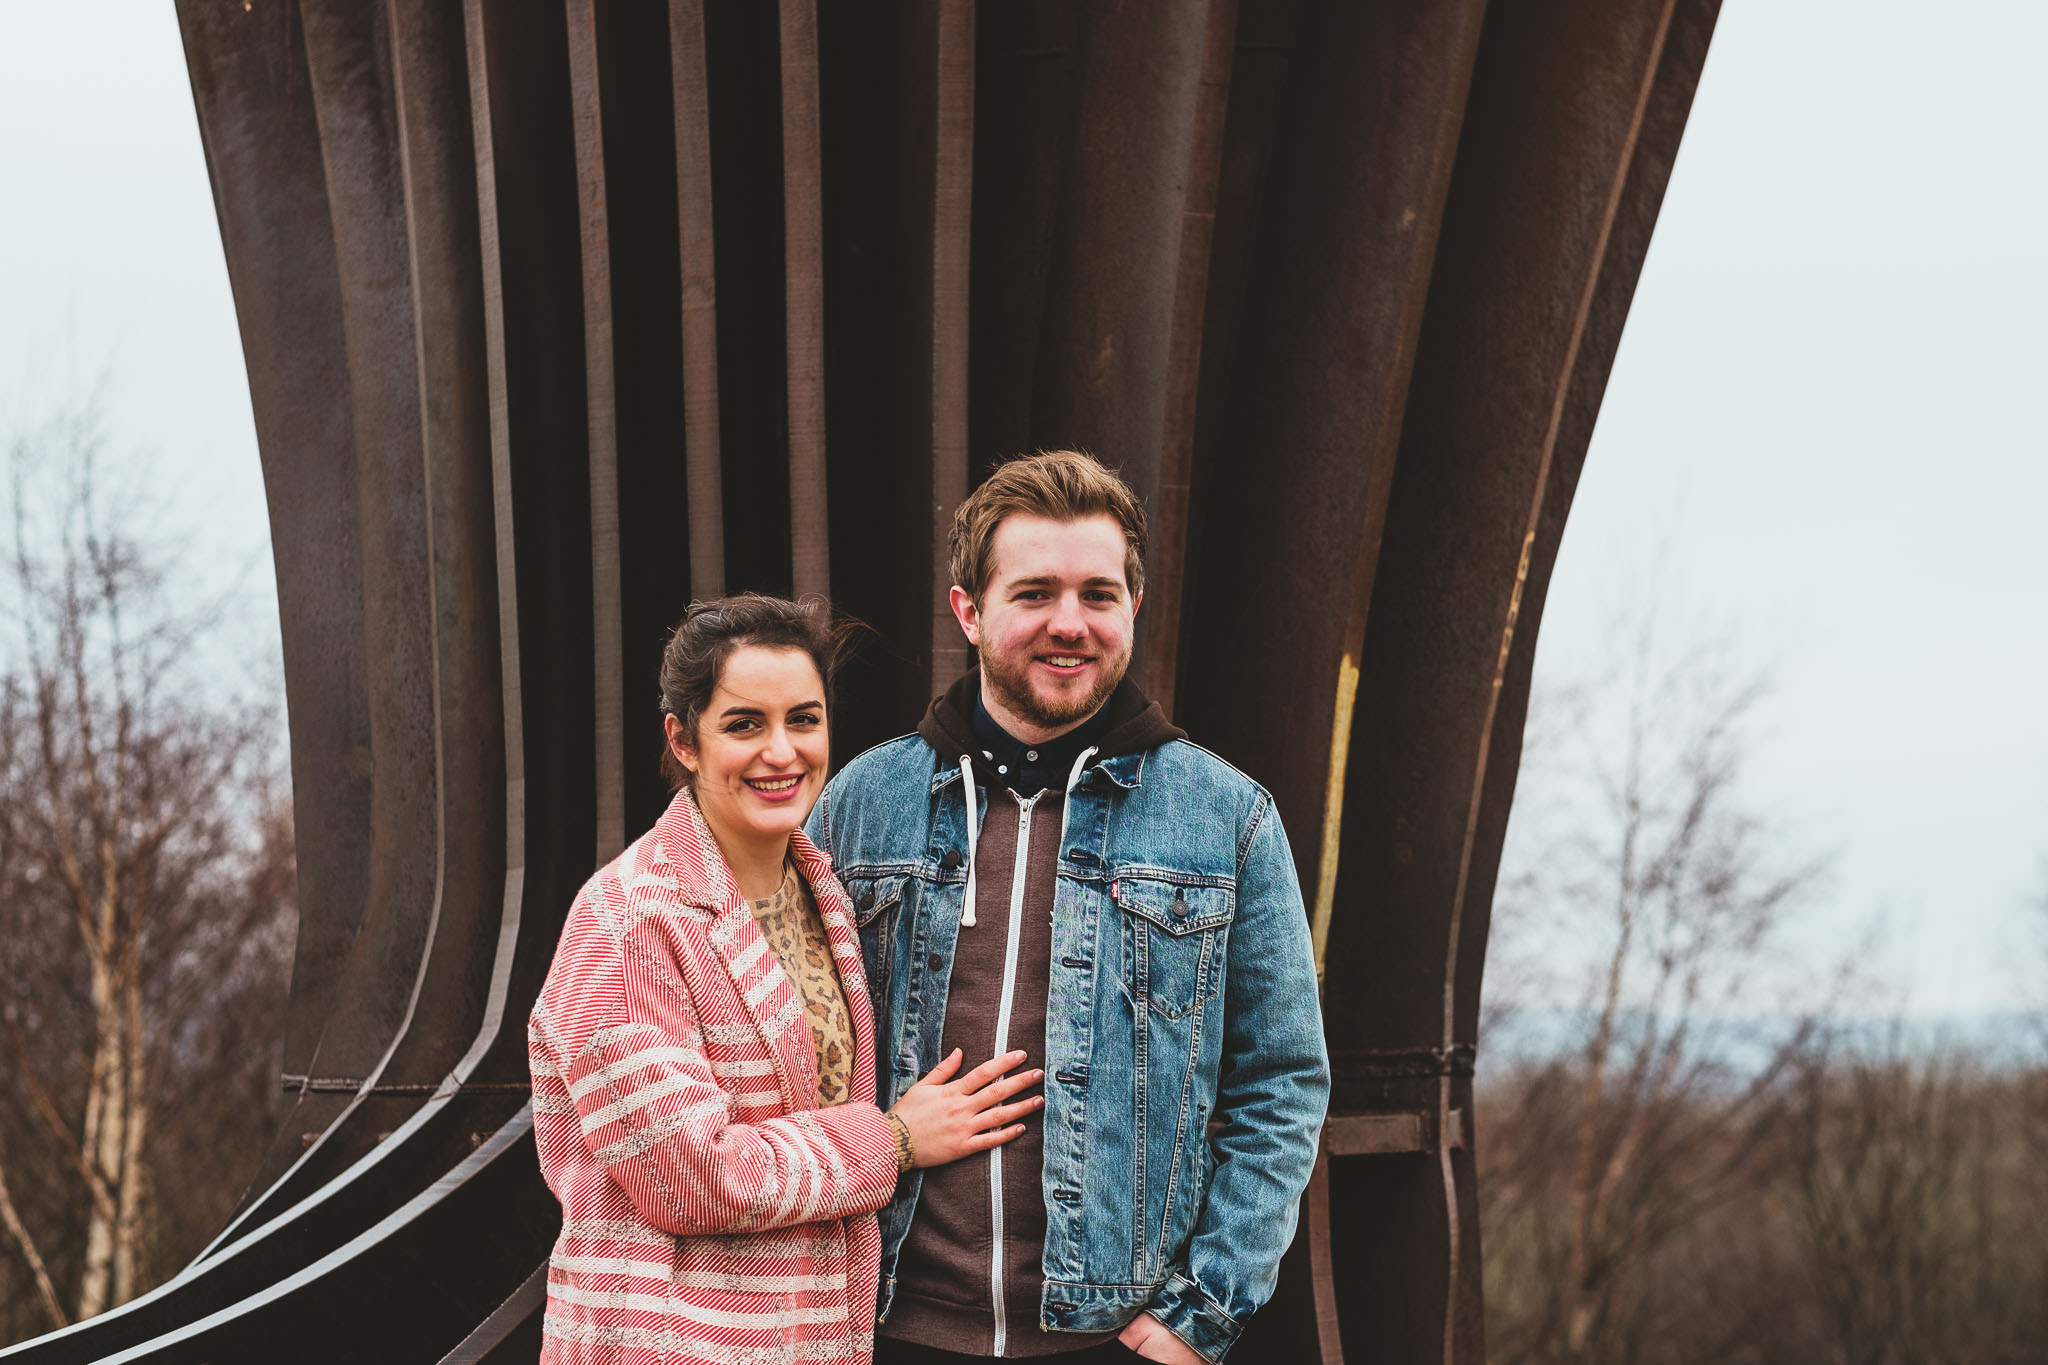 An engagement photo of a couple standing in front of the Angel of the North Gateshead